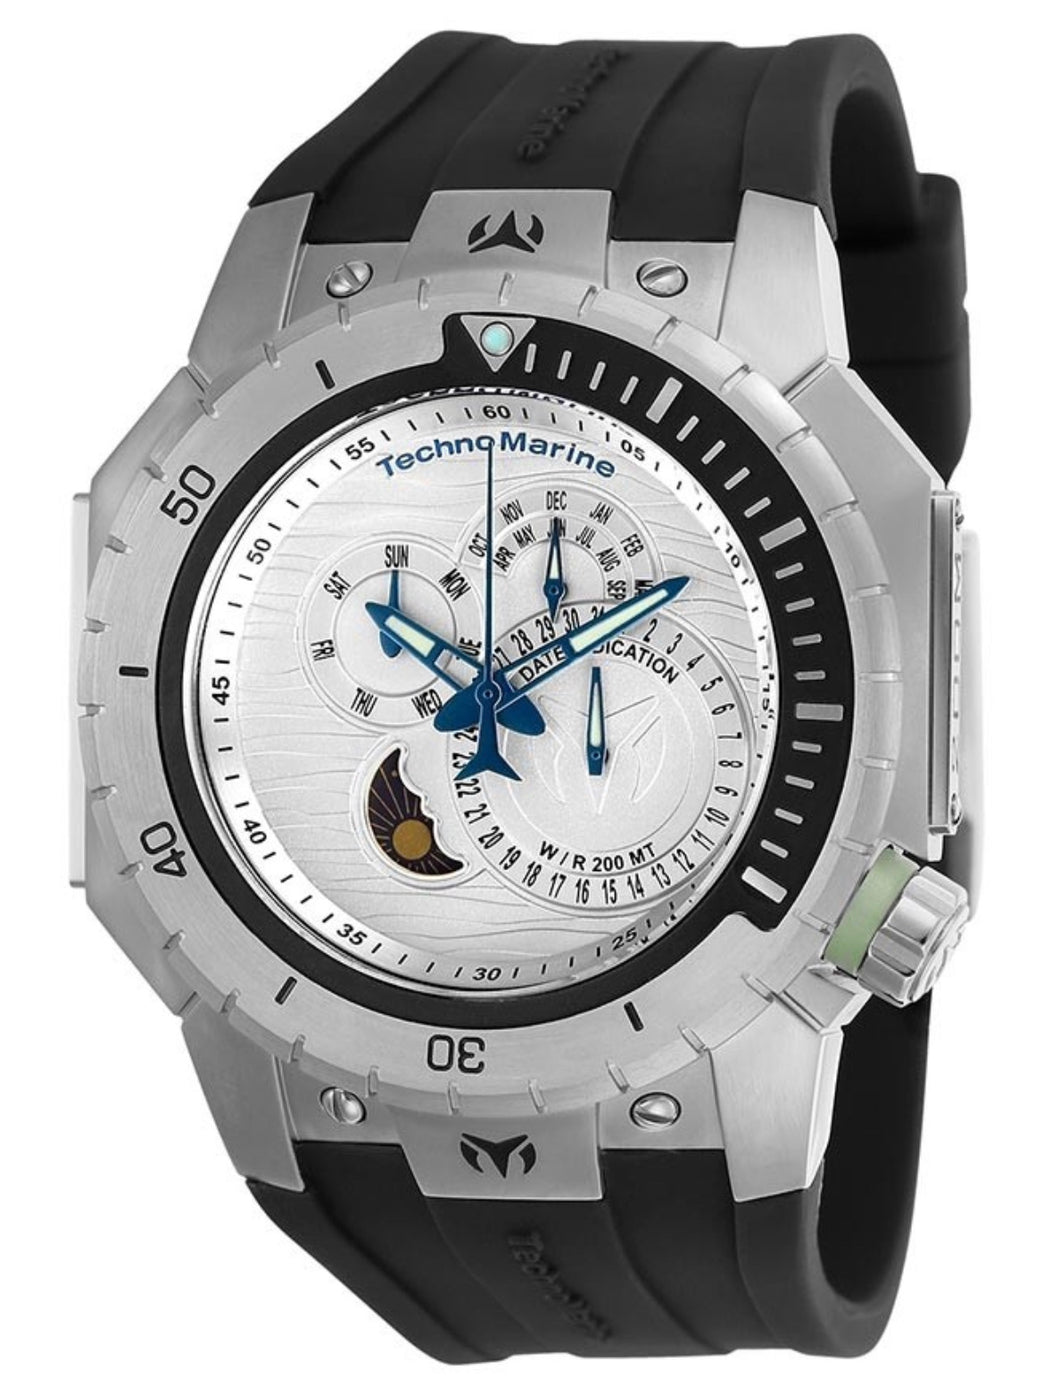 TECHNOMARINE MANTA SEA MENS 48.8 STAINLESS STEEL CASE SILVER DIAL - MODEL TM-216008 - Boutique Watches & More